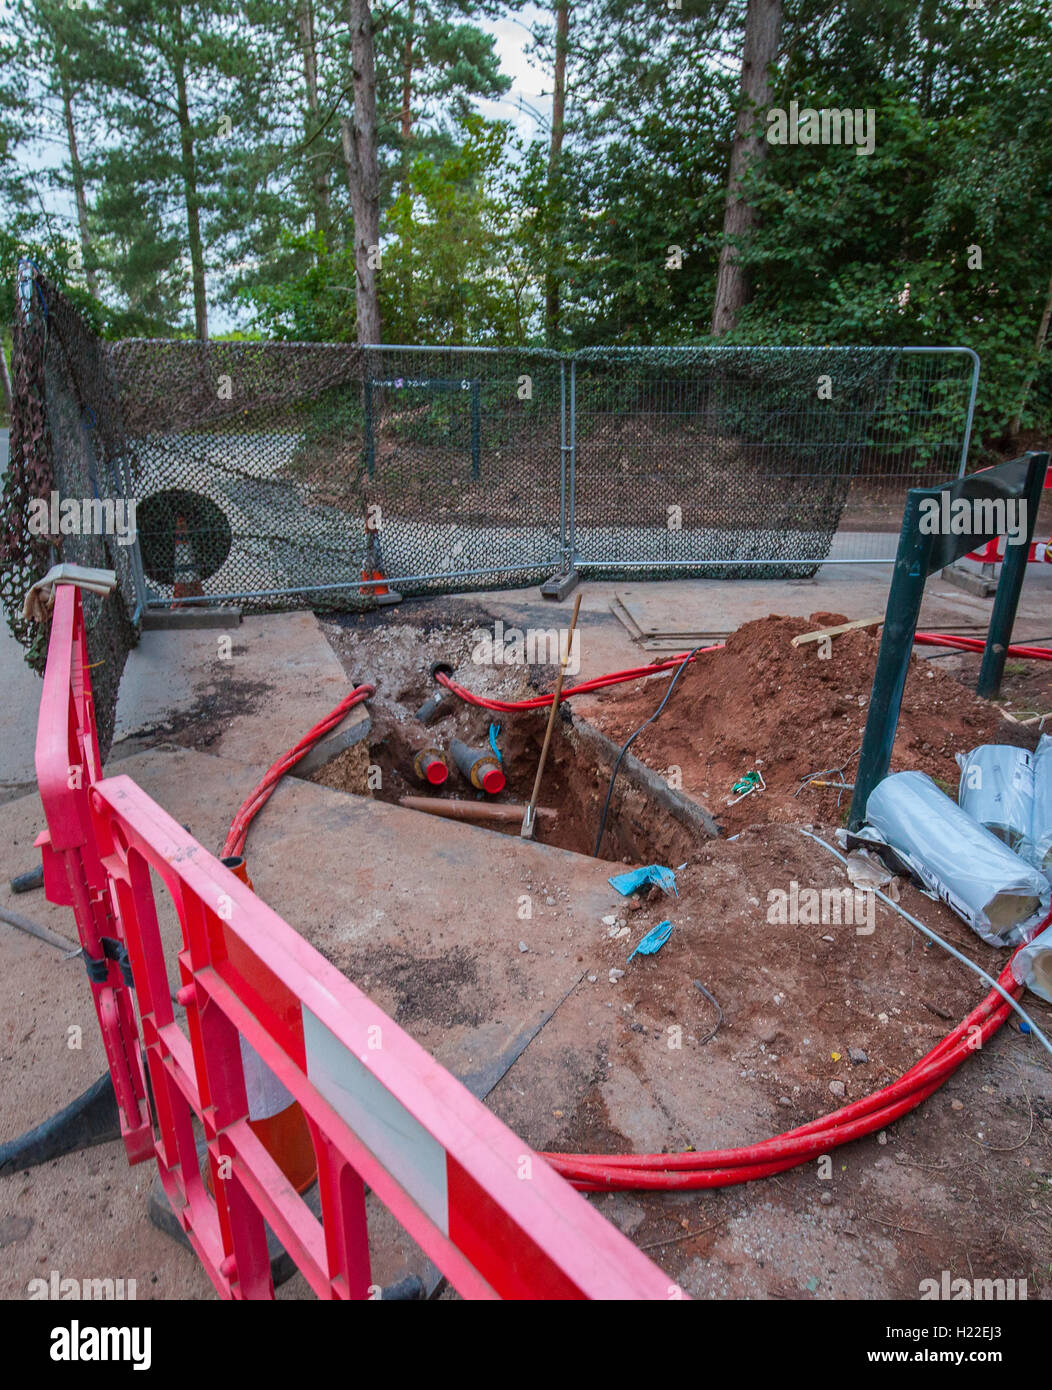 A hole being dug in the ground for utilities - Stock Image